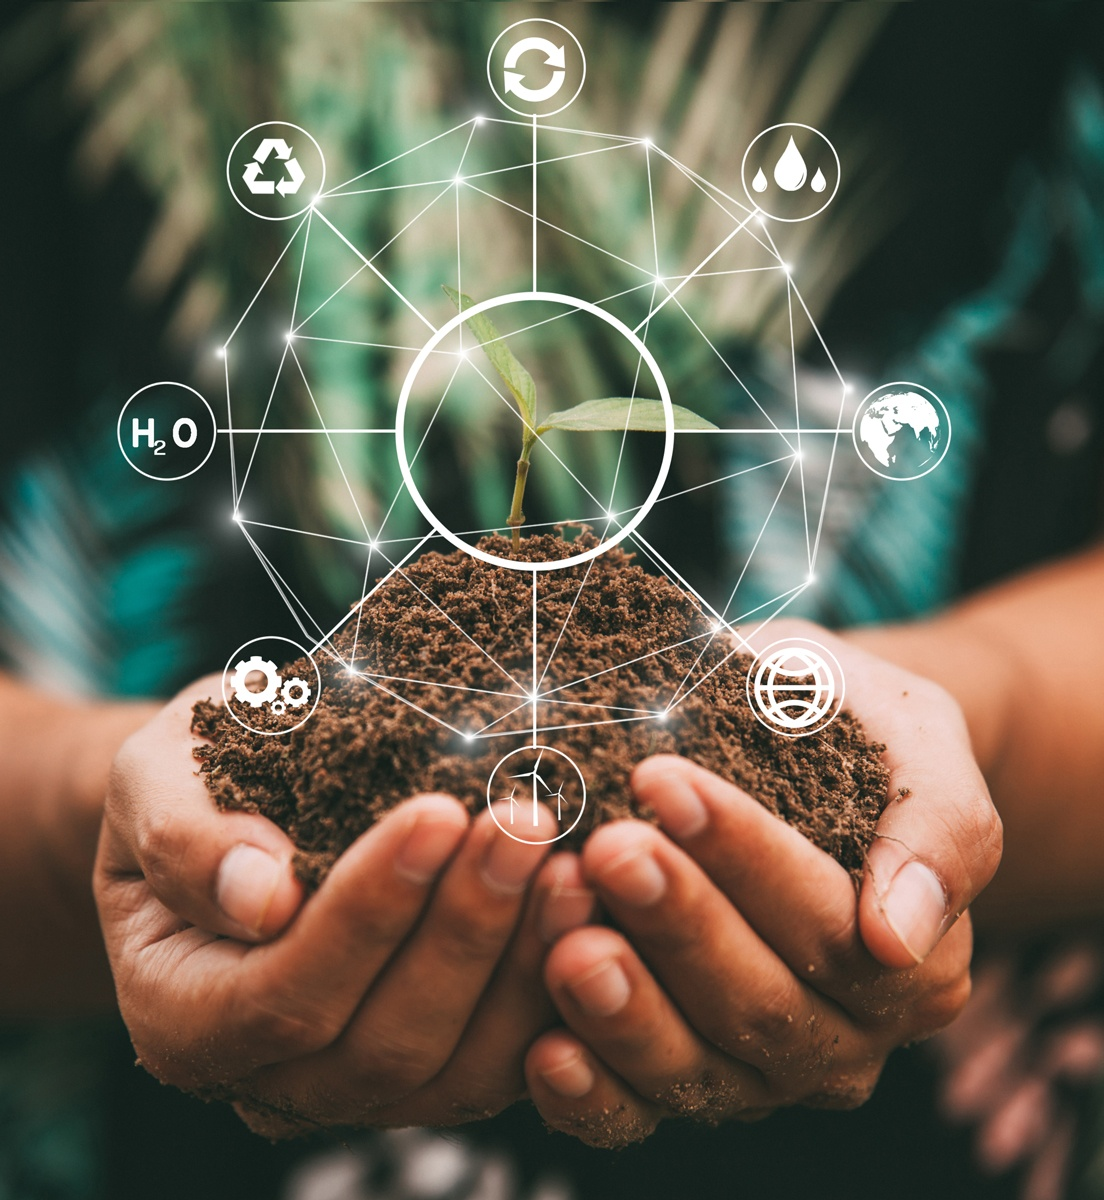 A graphic representation of the environmental cycle with hands holding a seedling in soil.